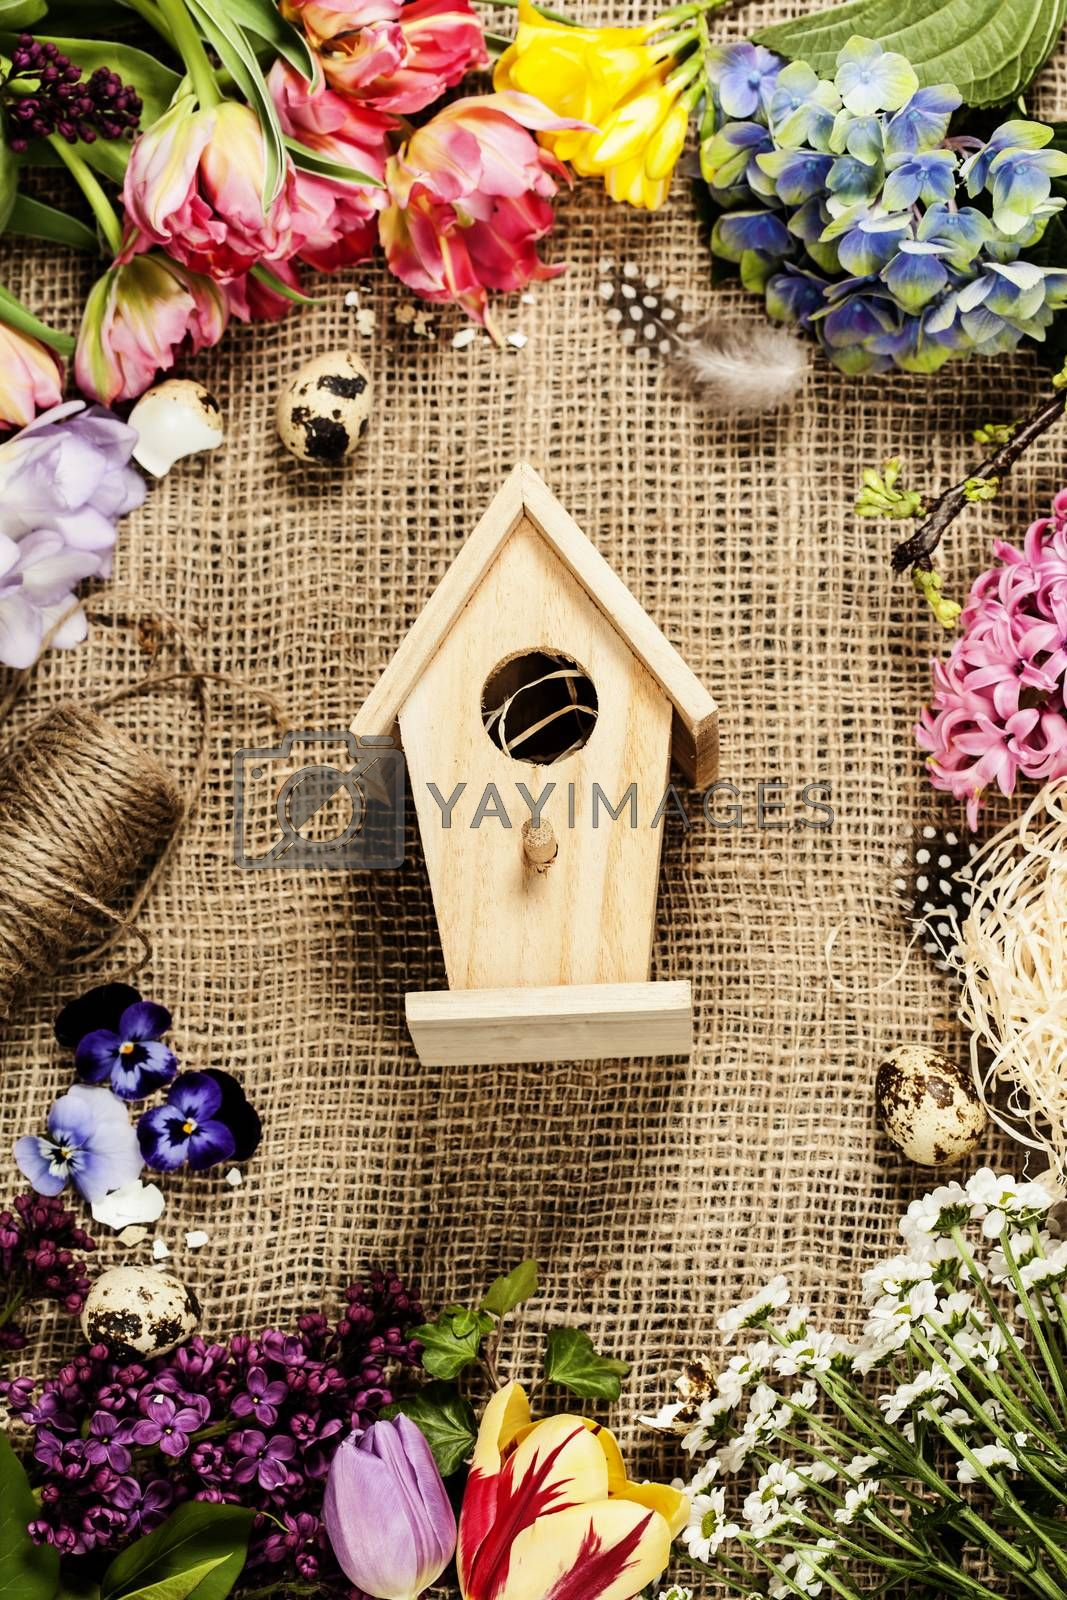 Easter background with bird house, eggs, nest and flowers